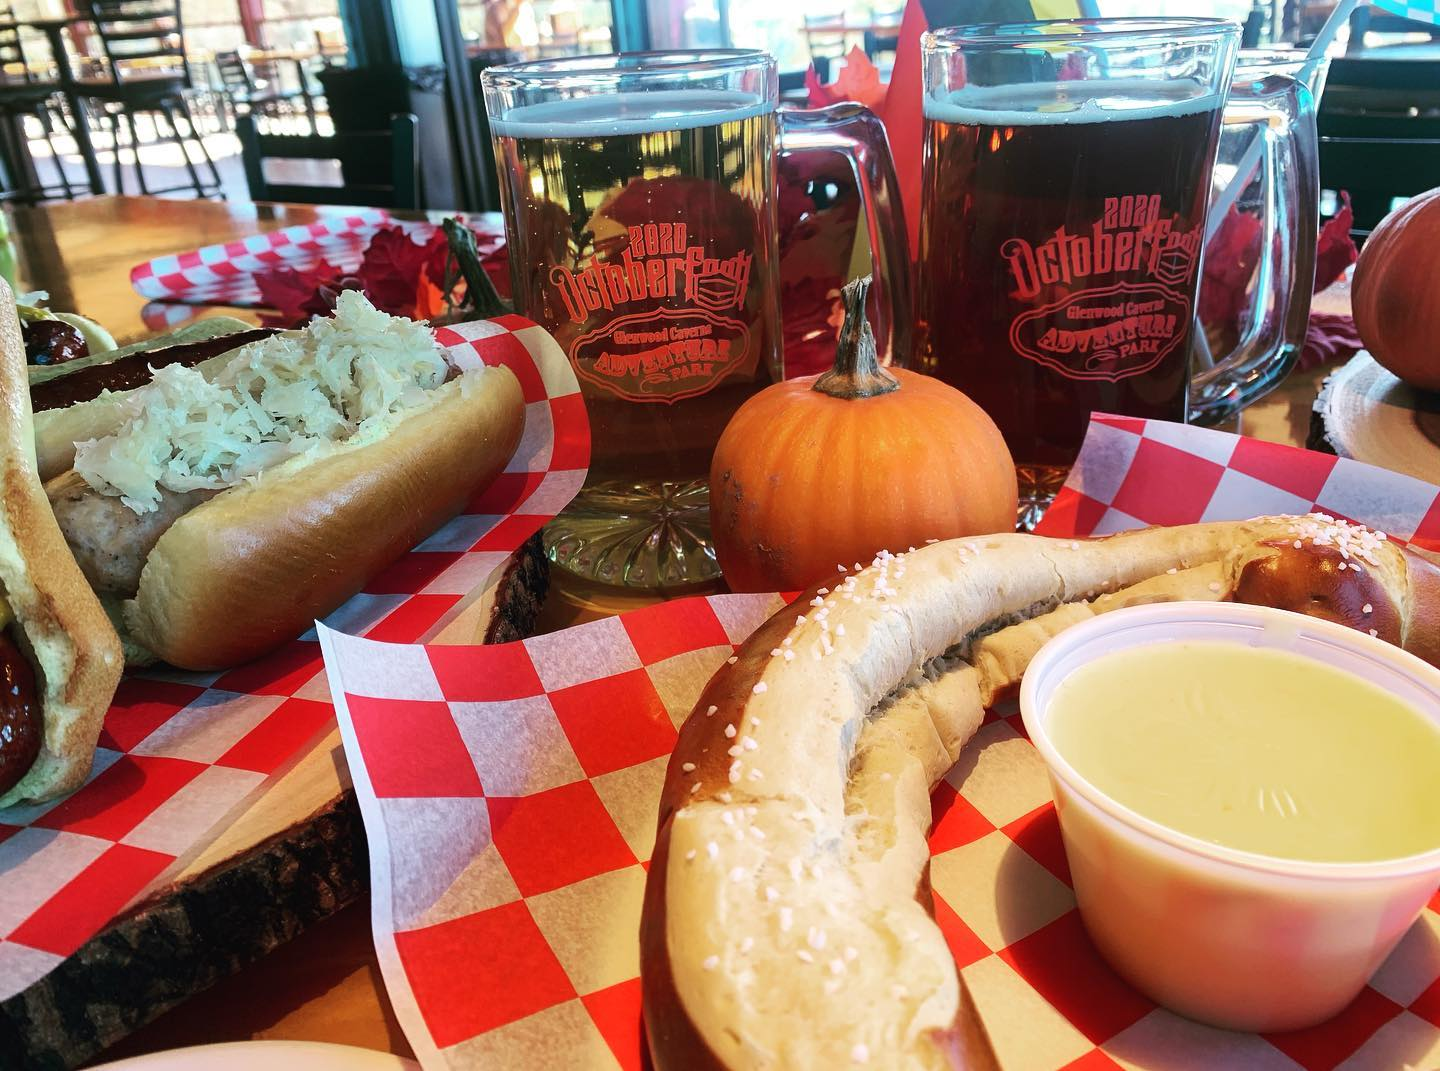 Image of food and beer from Glenwood Springs Octoberfest in Colorado